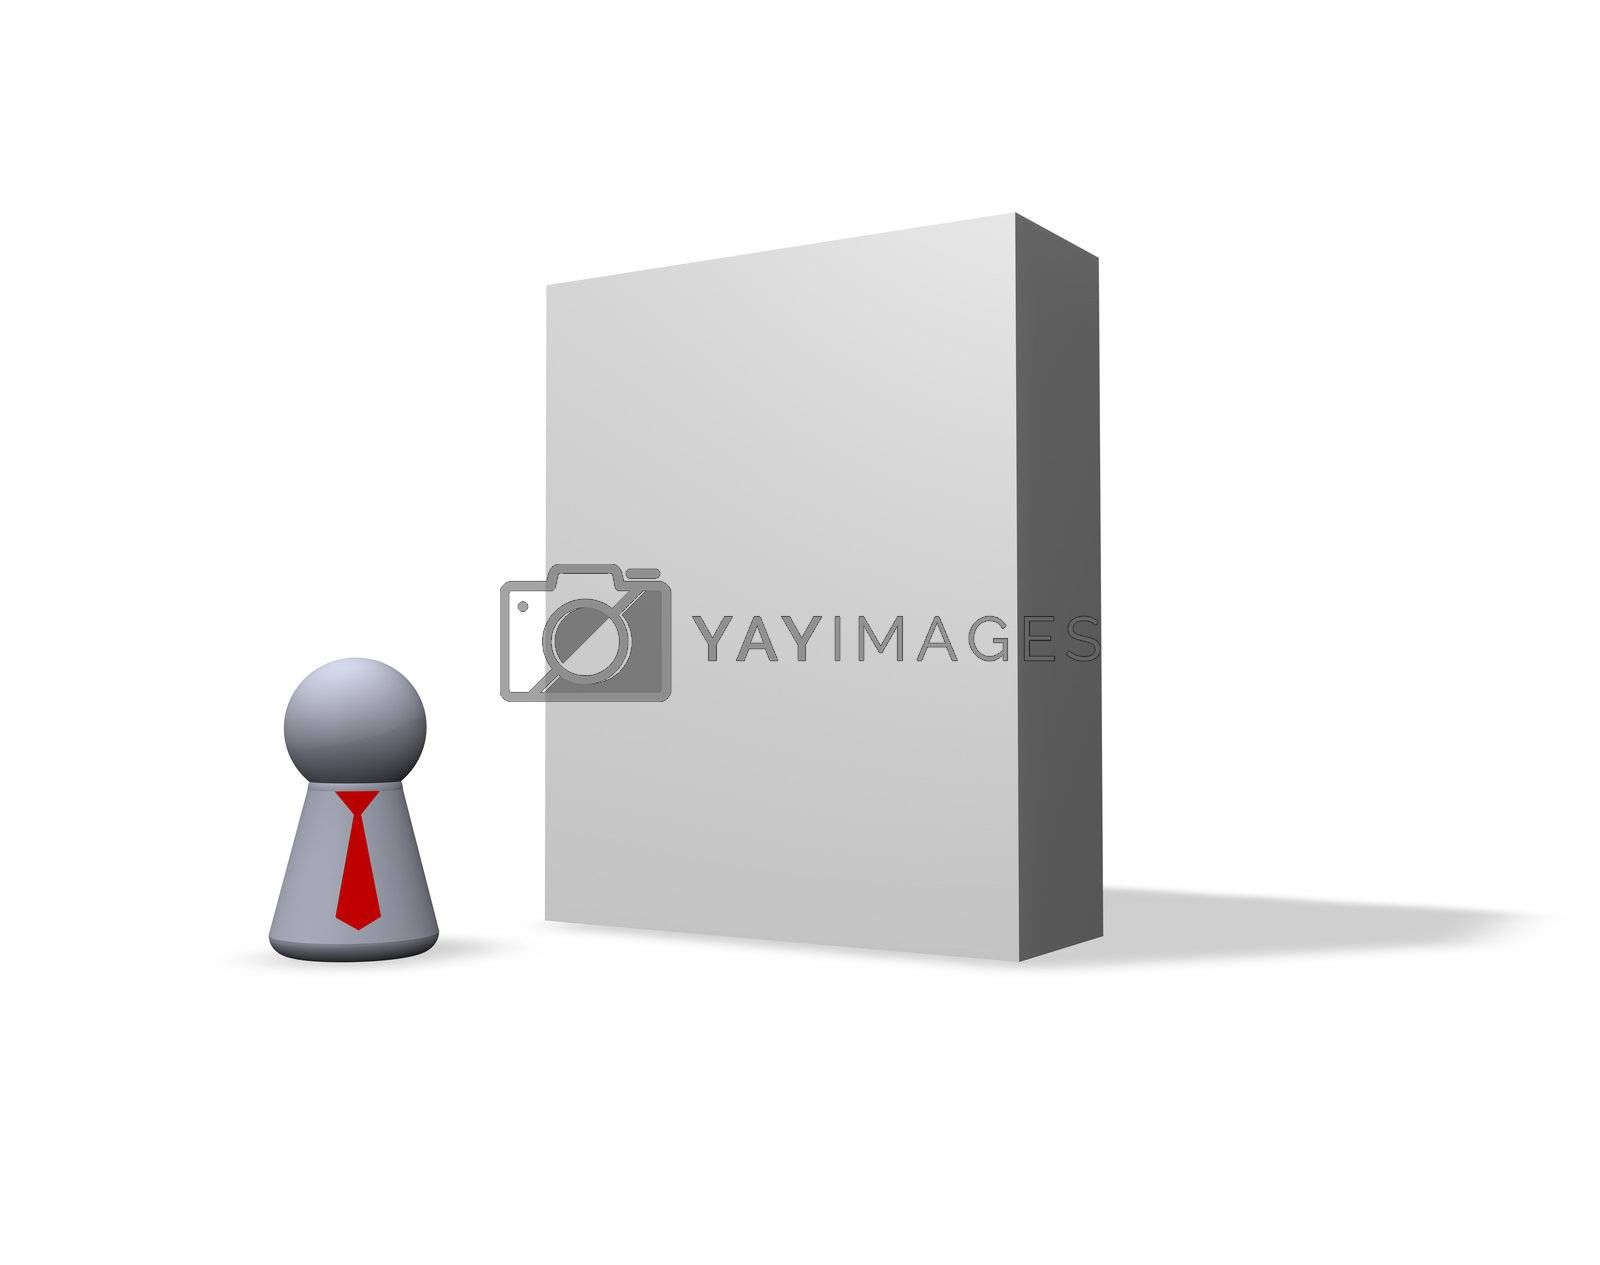 blank software packing and play figure with red tie